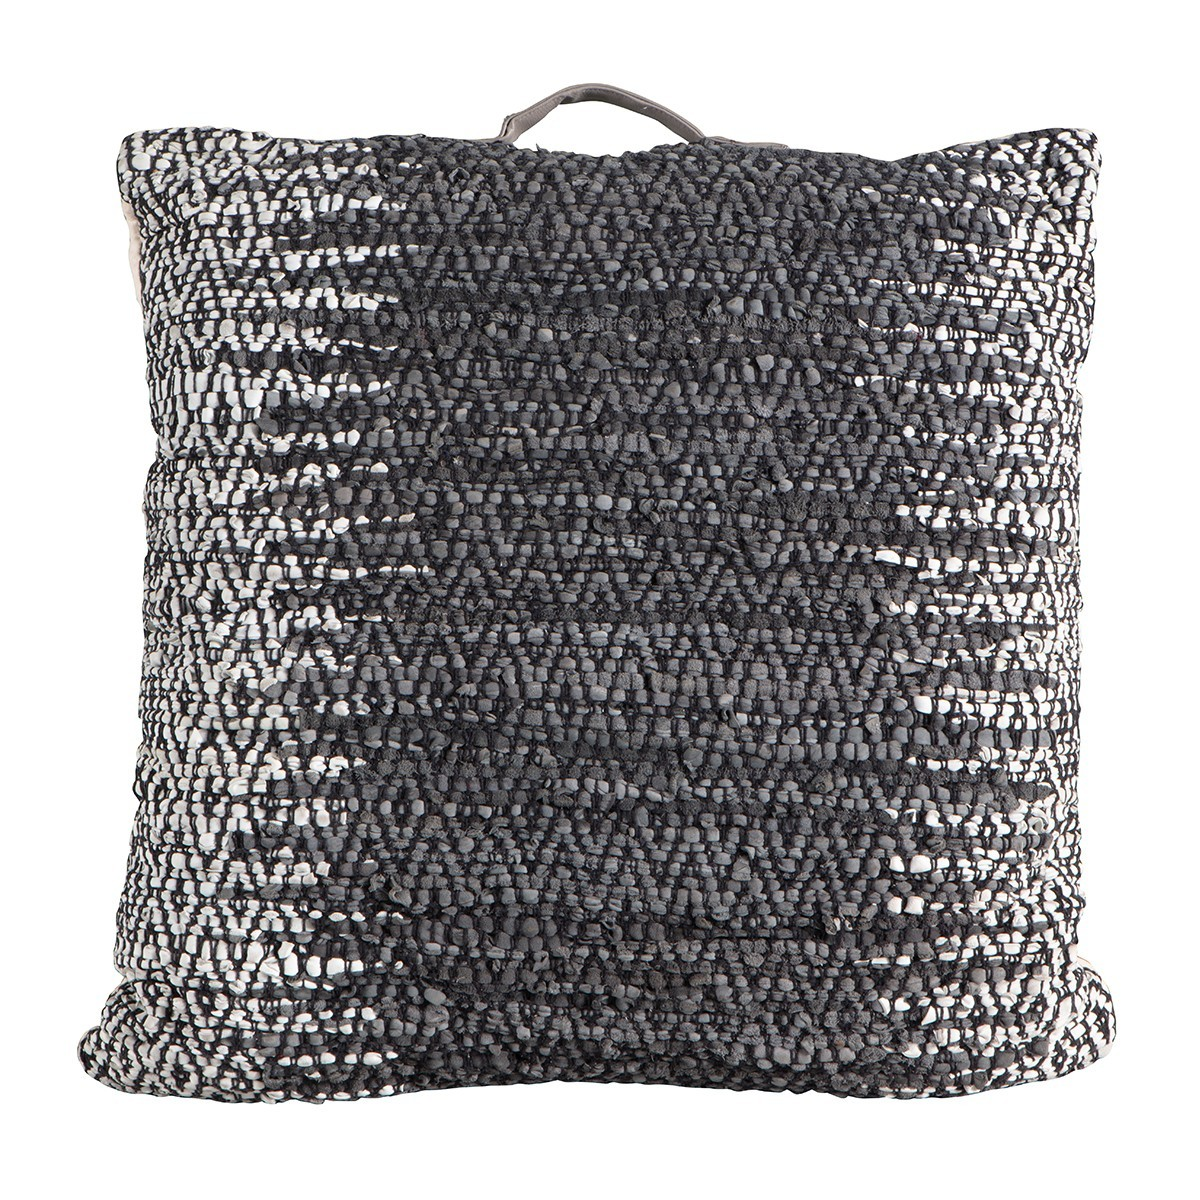 Garcia Braided Leather Floor Cushion, Charcoal